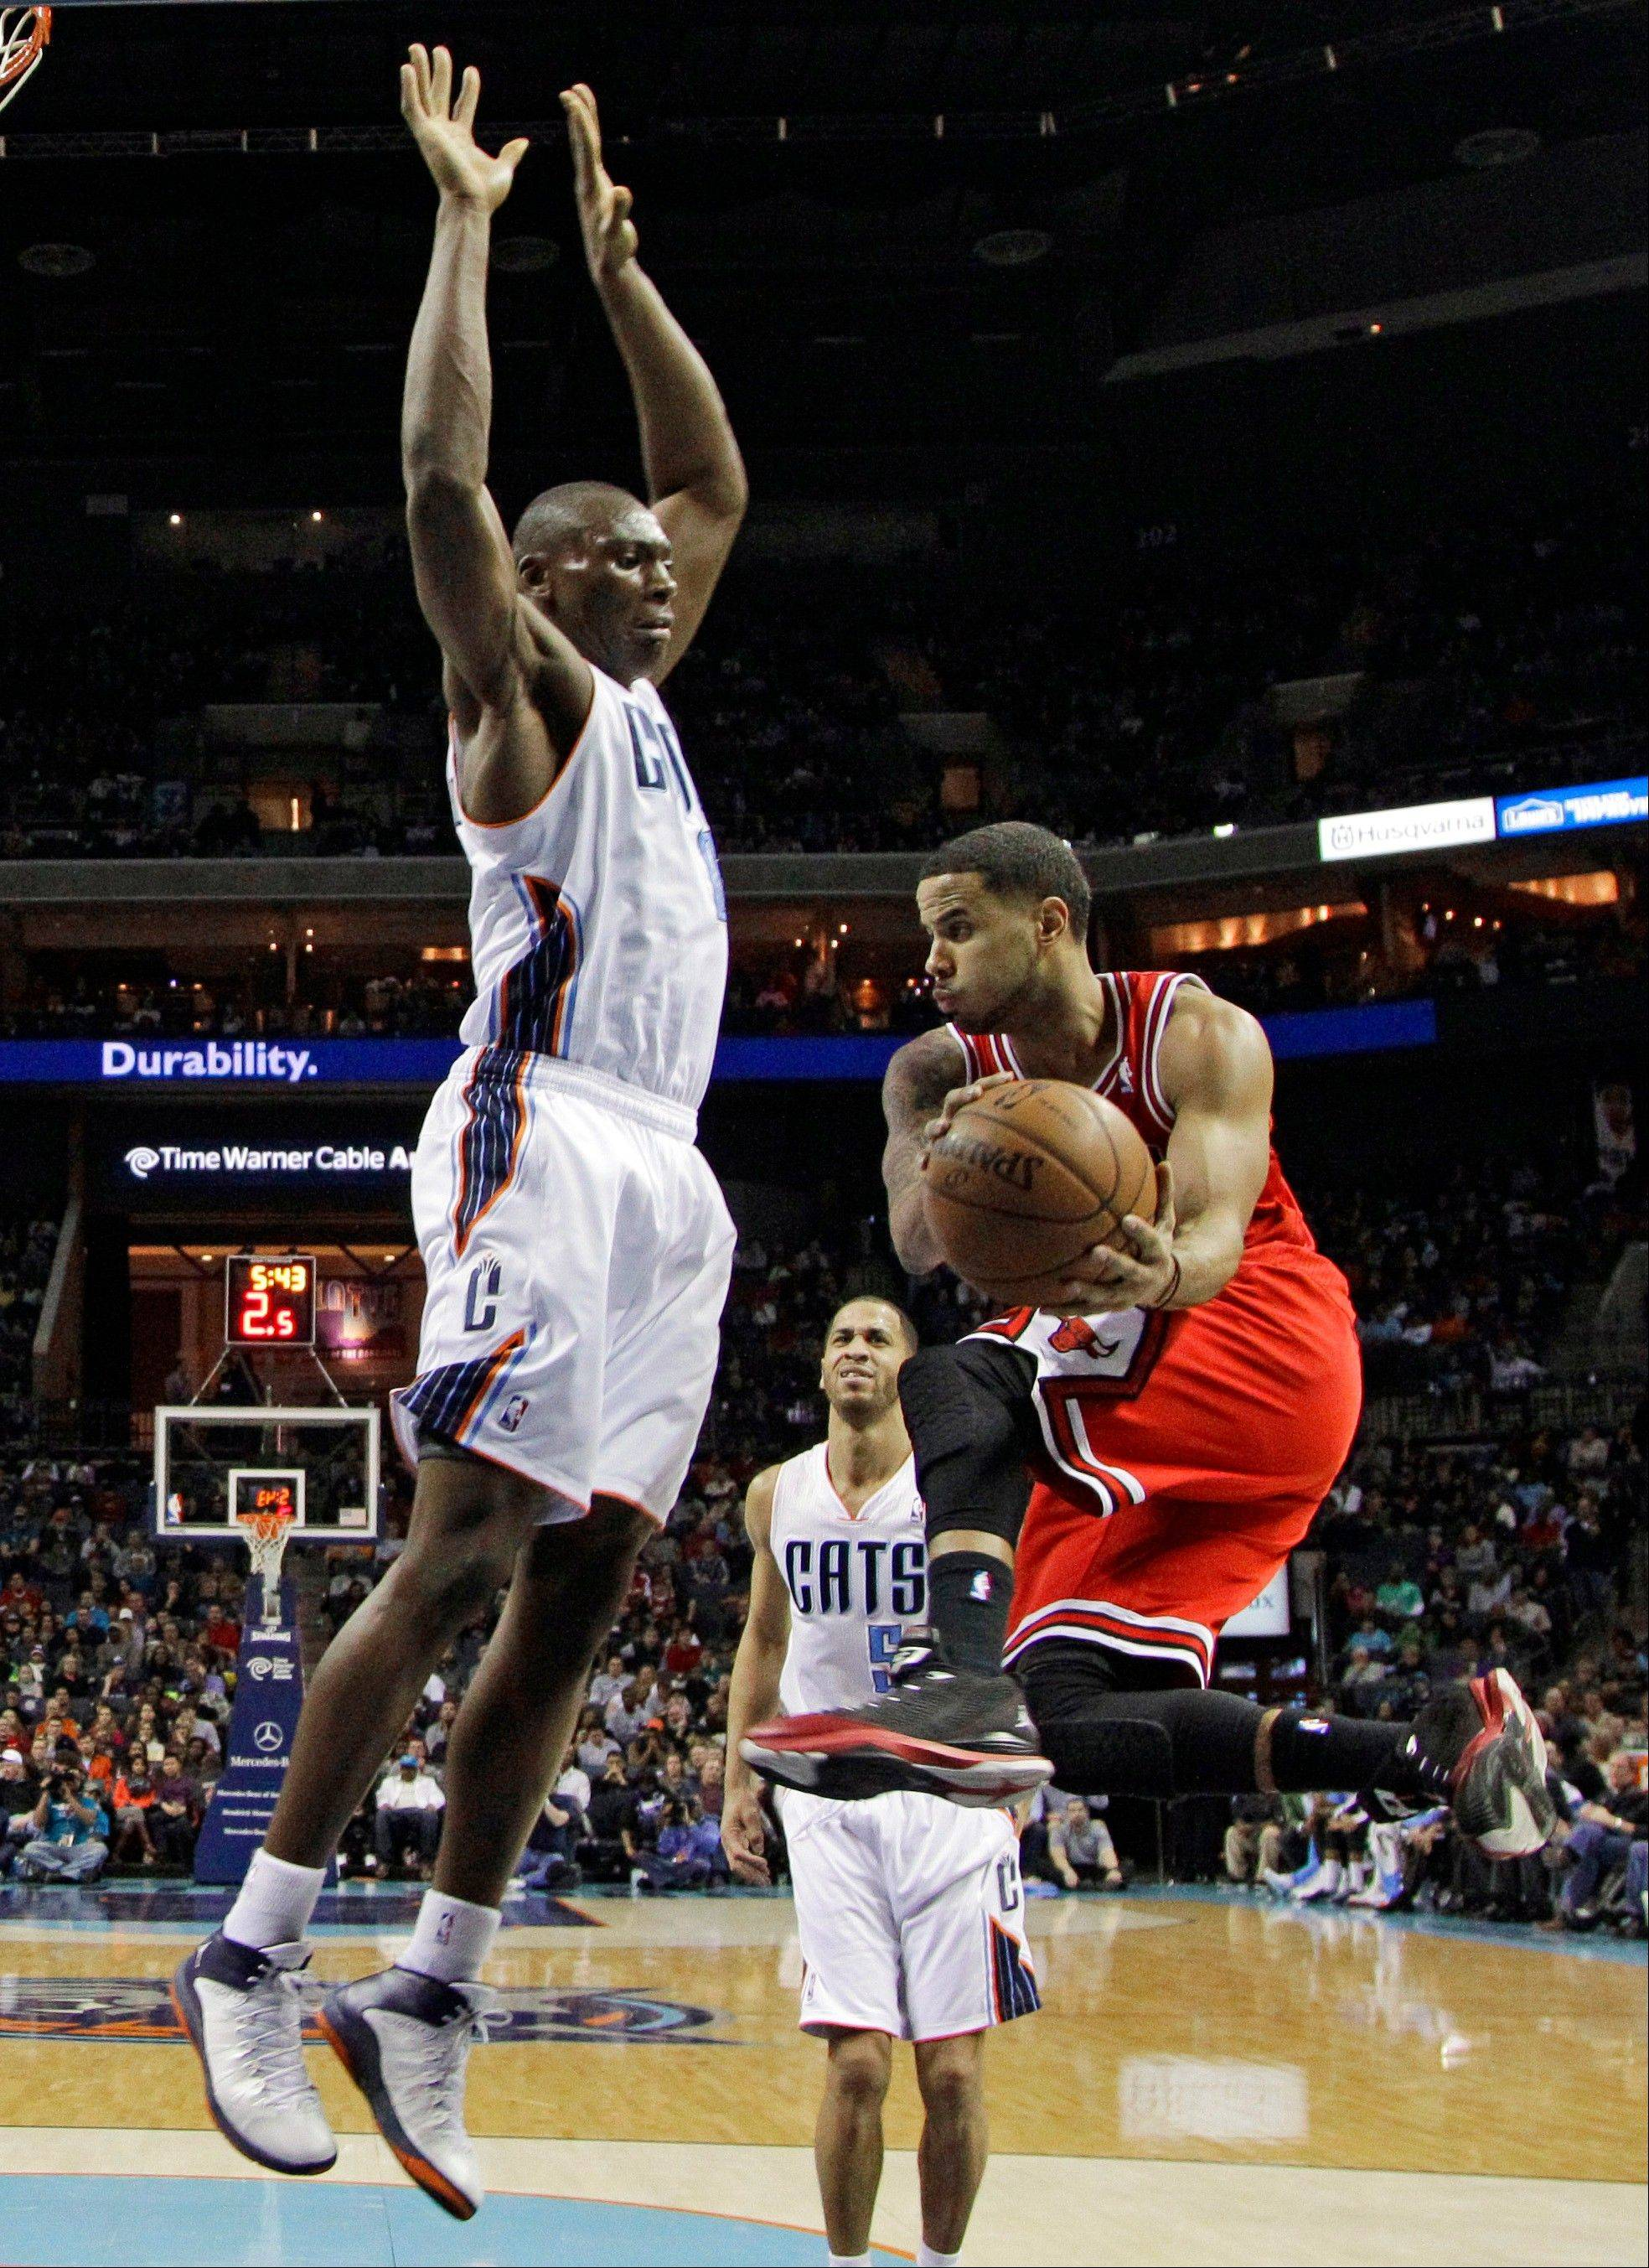 The Bulls� D.J. Augustin, right, looks to pass around Charlotte Bobcats� Bismack Biyombo, left, during Saturday night�s game in Charlotte, N.C. The Bulls beat the Bobcats 89-87.